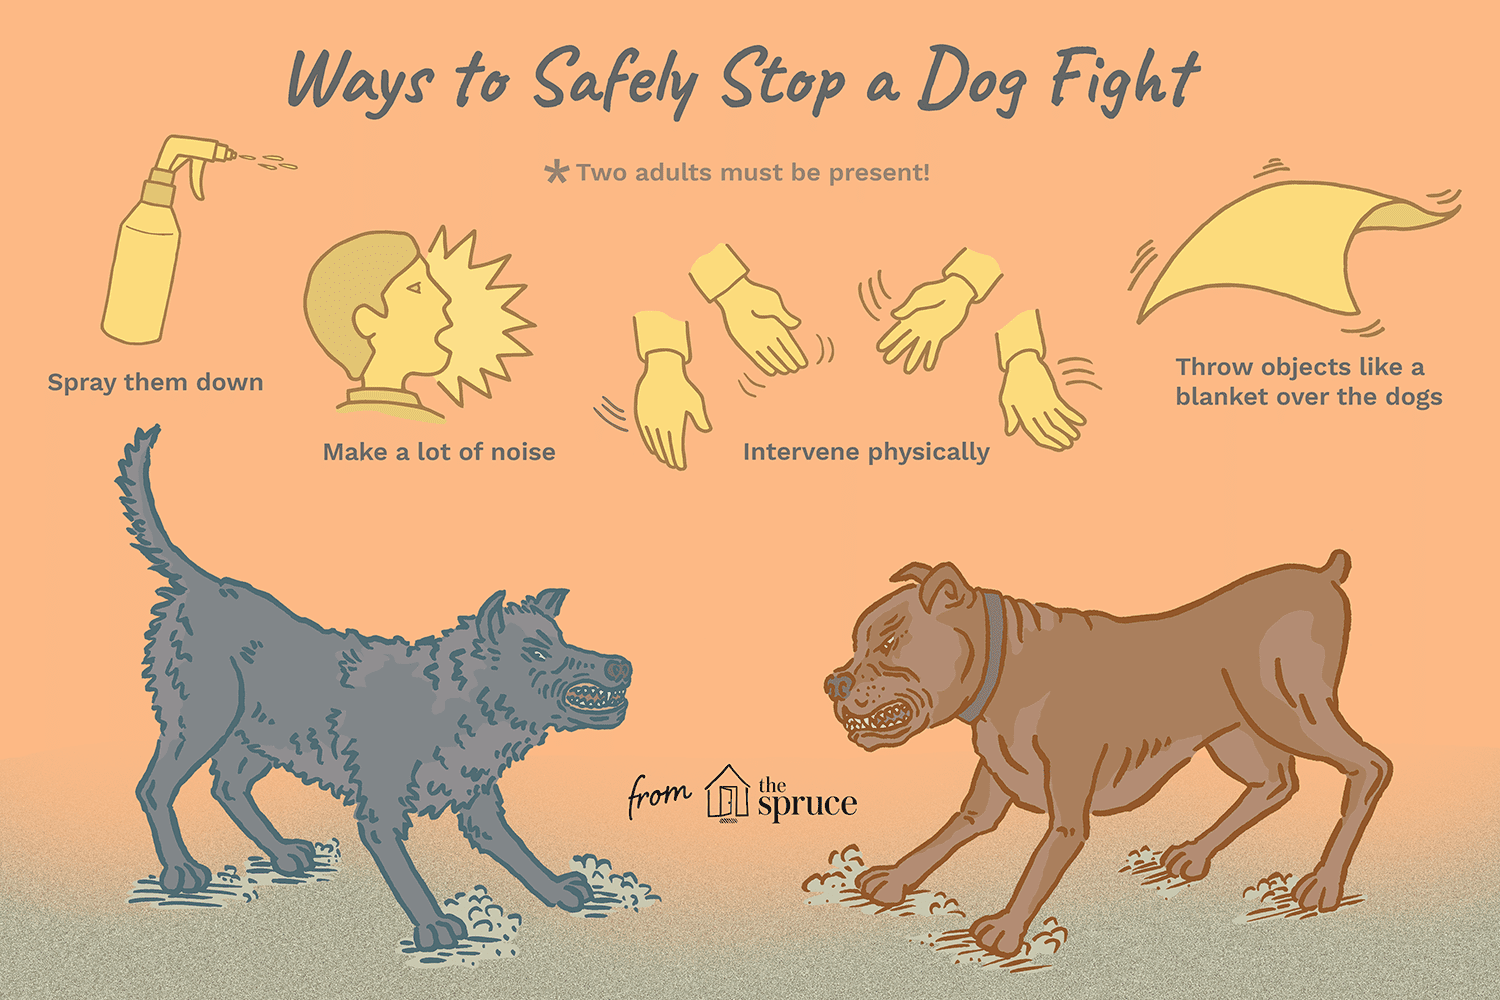 Reasons Why Dogs Fight and How to Safely Stop It